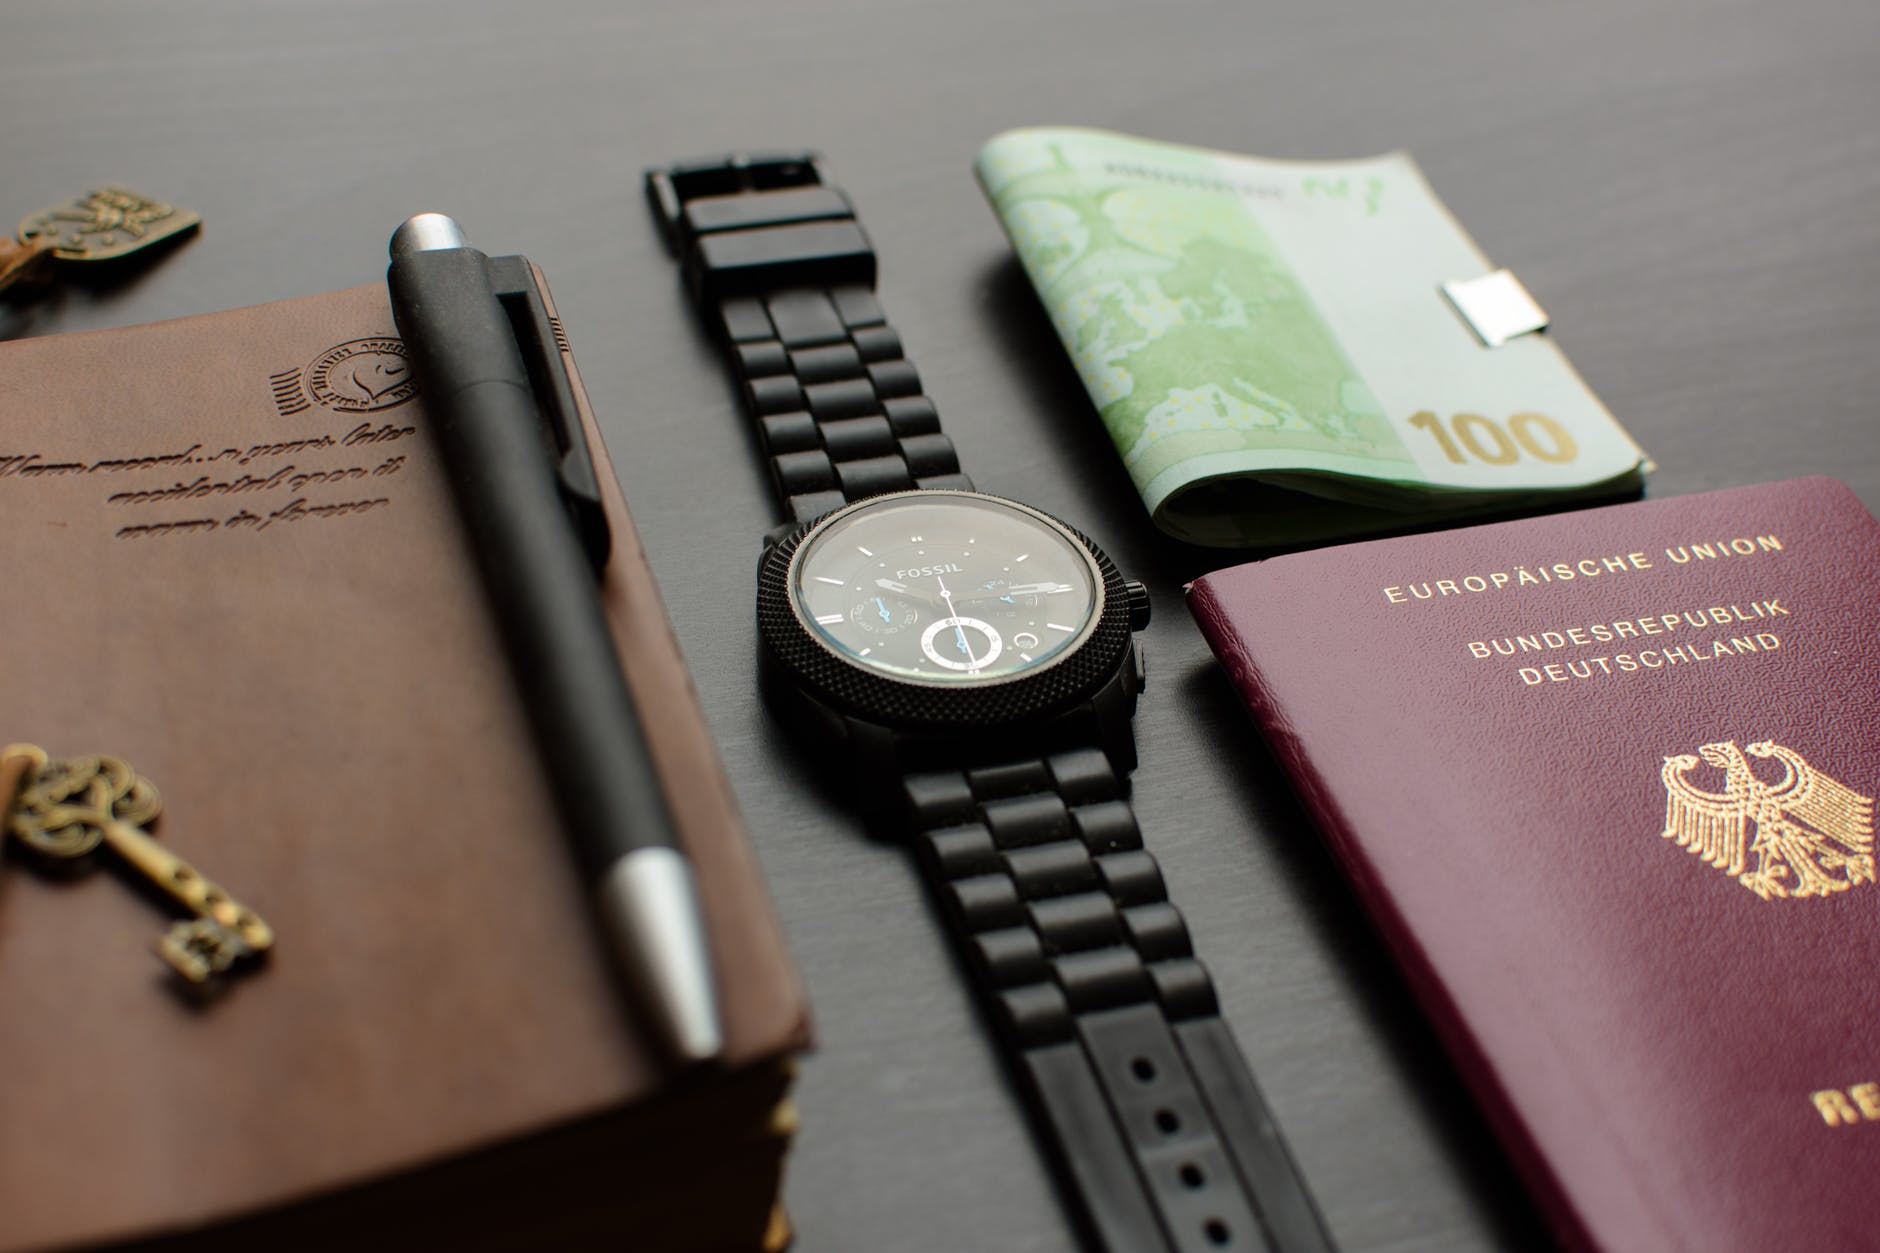 round black chronograph watch on table near germany passport an banknote on table